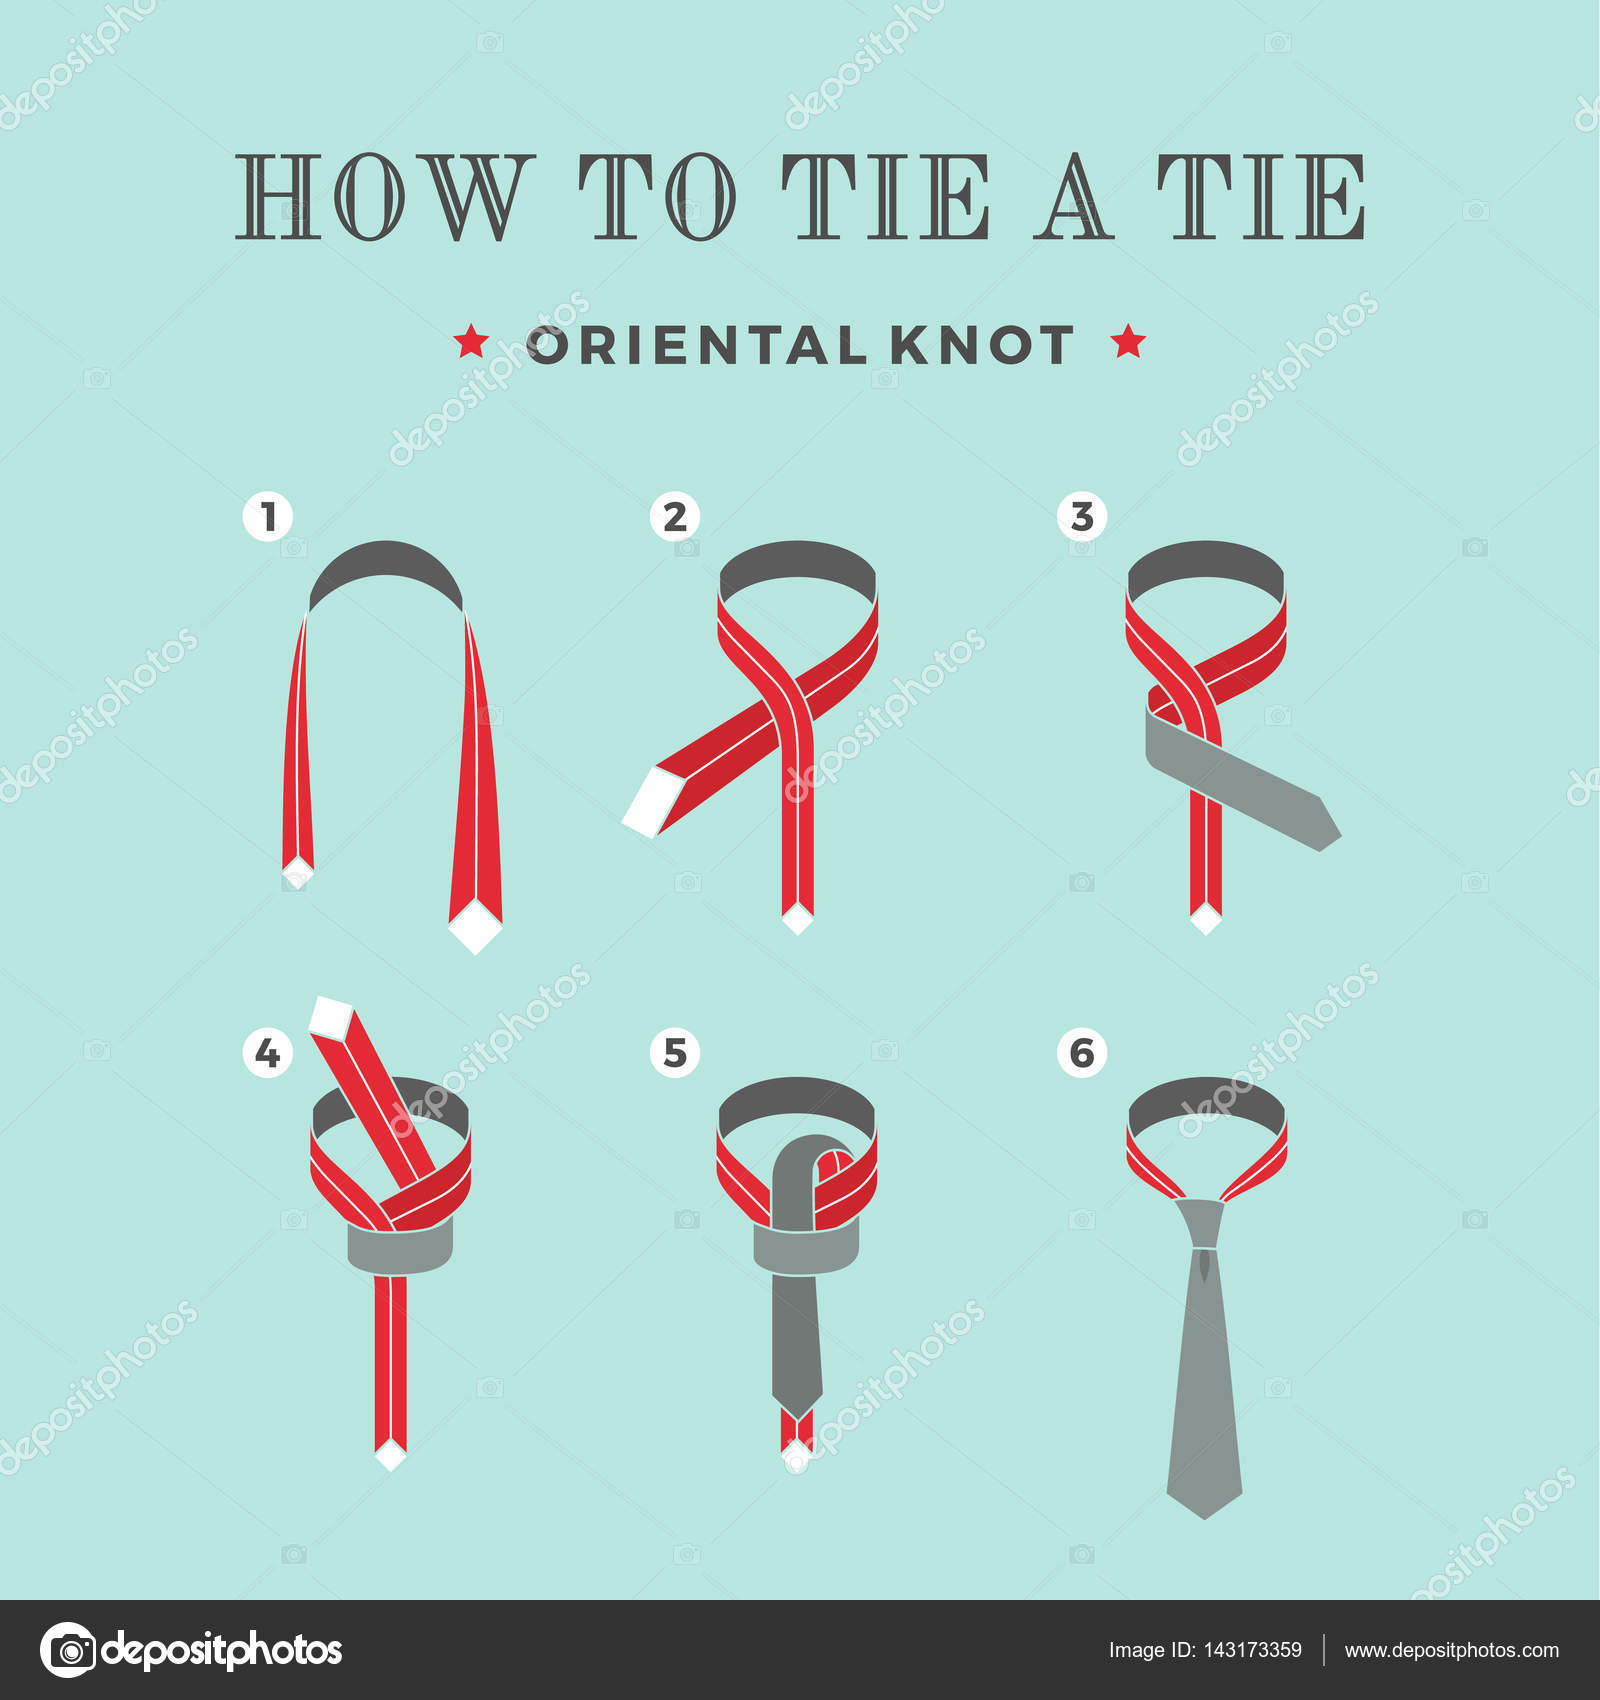 Instructions on how to tie a tie on the turquoise background of instructions on how to tie a tie on the turquoise background of the six steps ccuart Choice Image